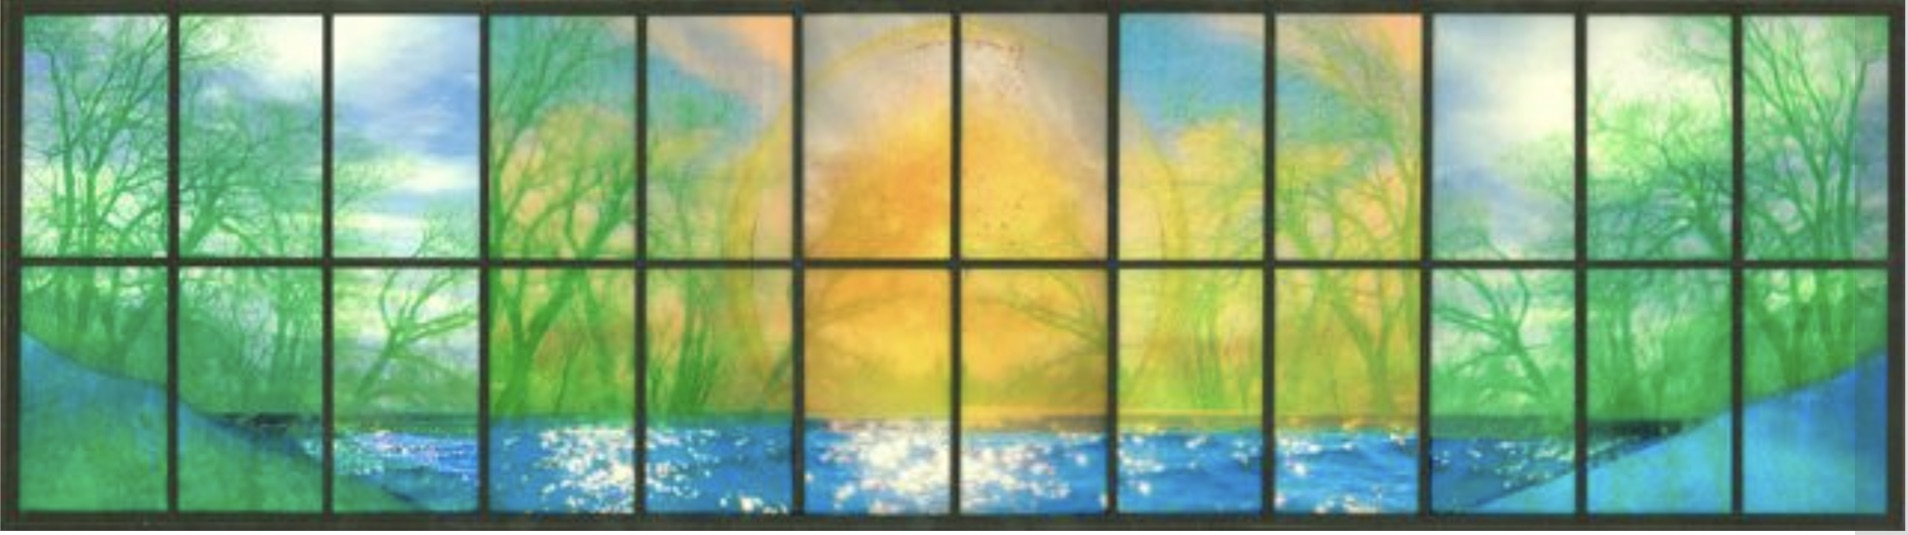 2018 Reverence for Life nature window image